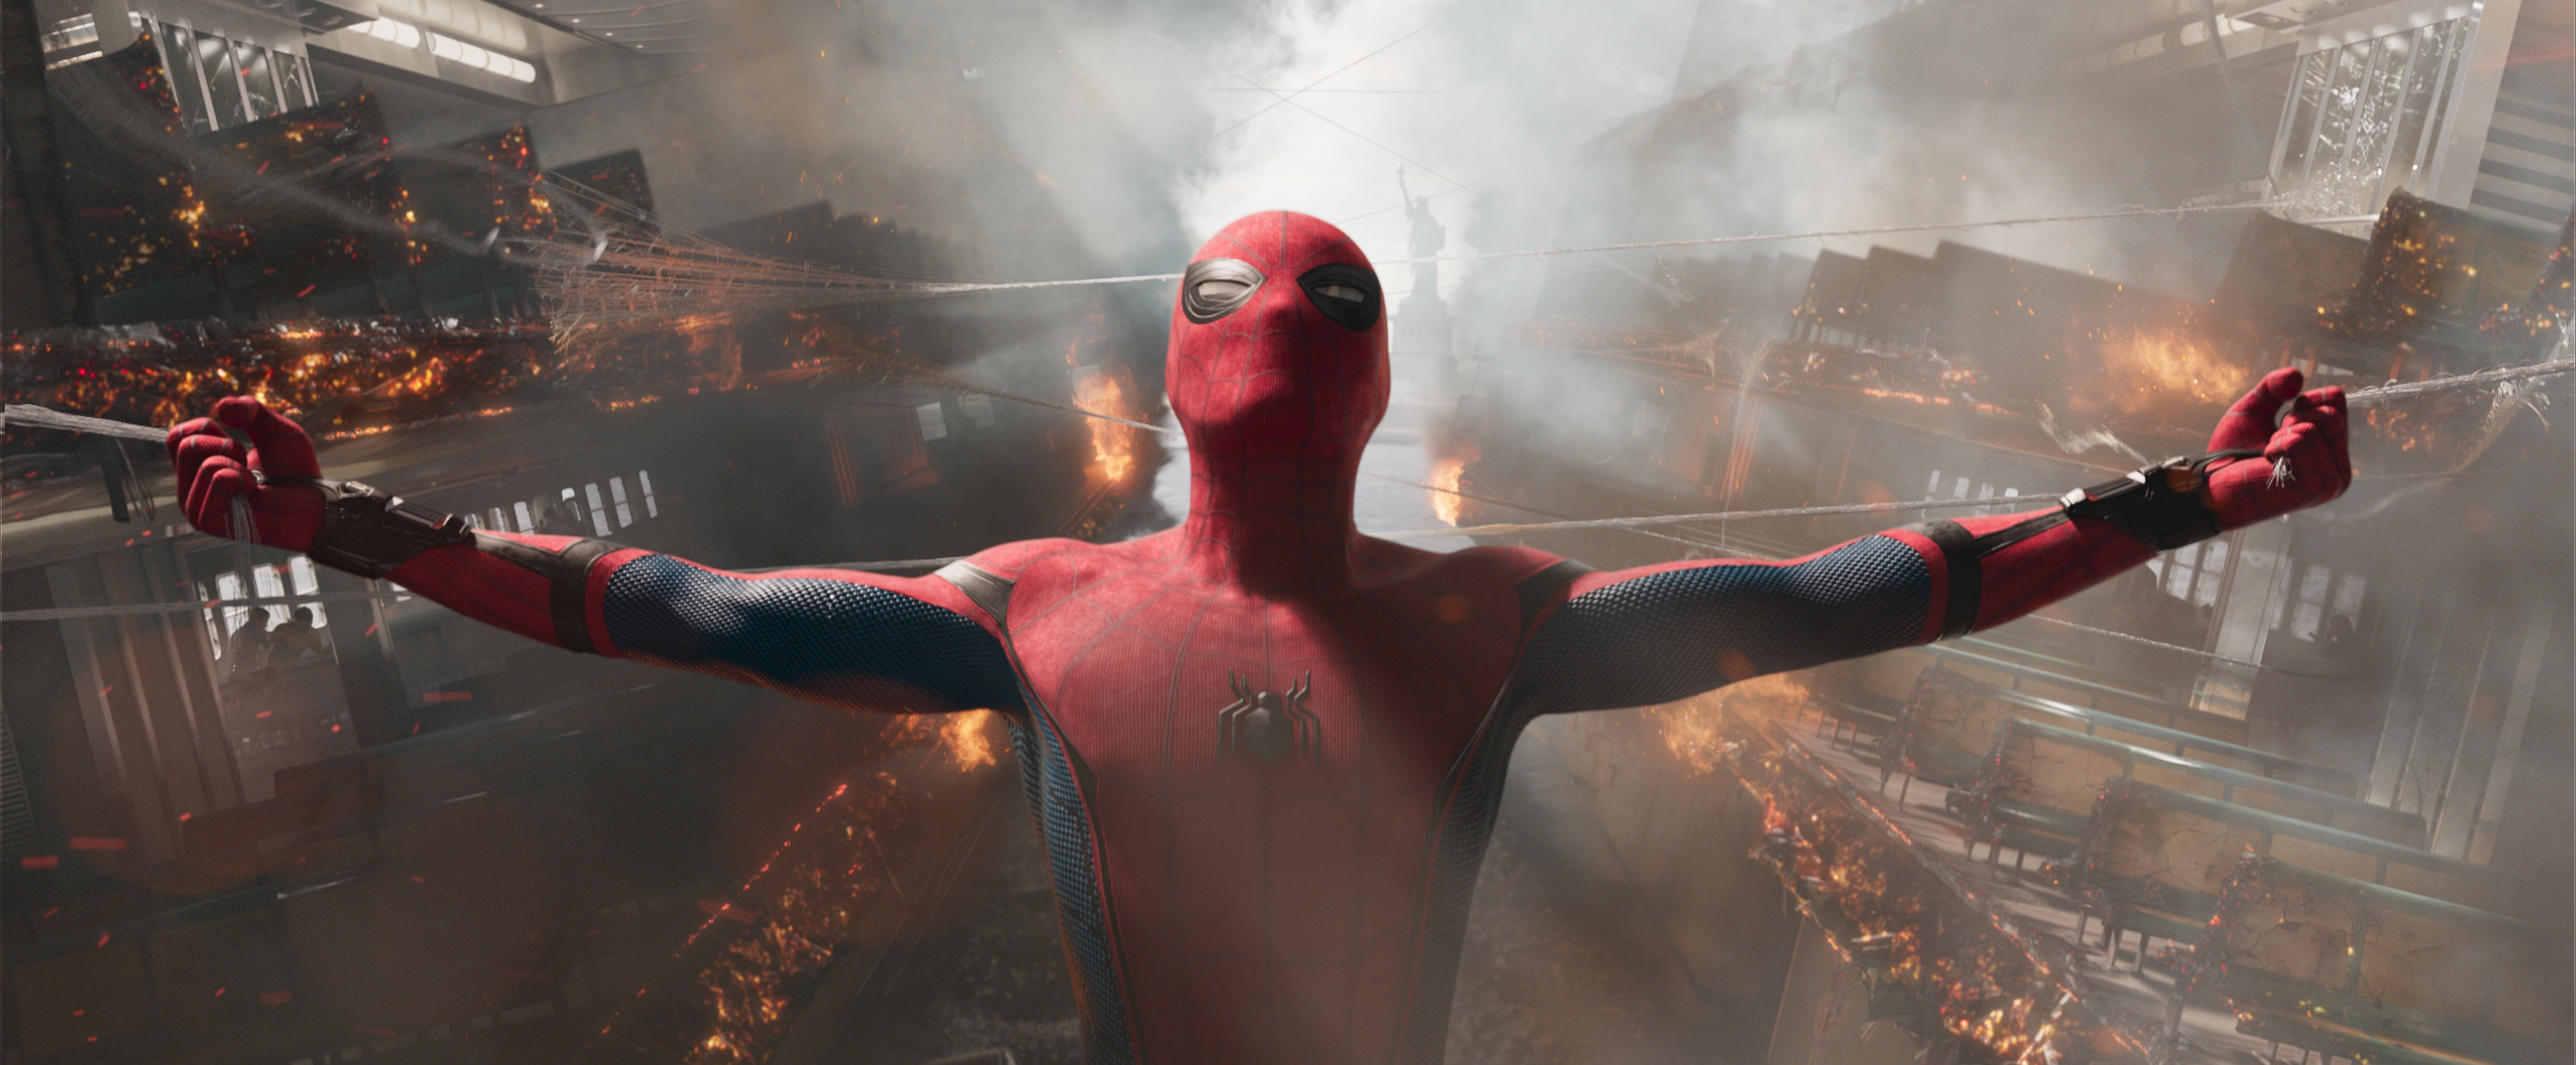 Spider-Man: Homecoming's VFX lead unpacks the secrets of the